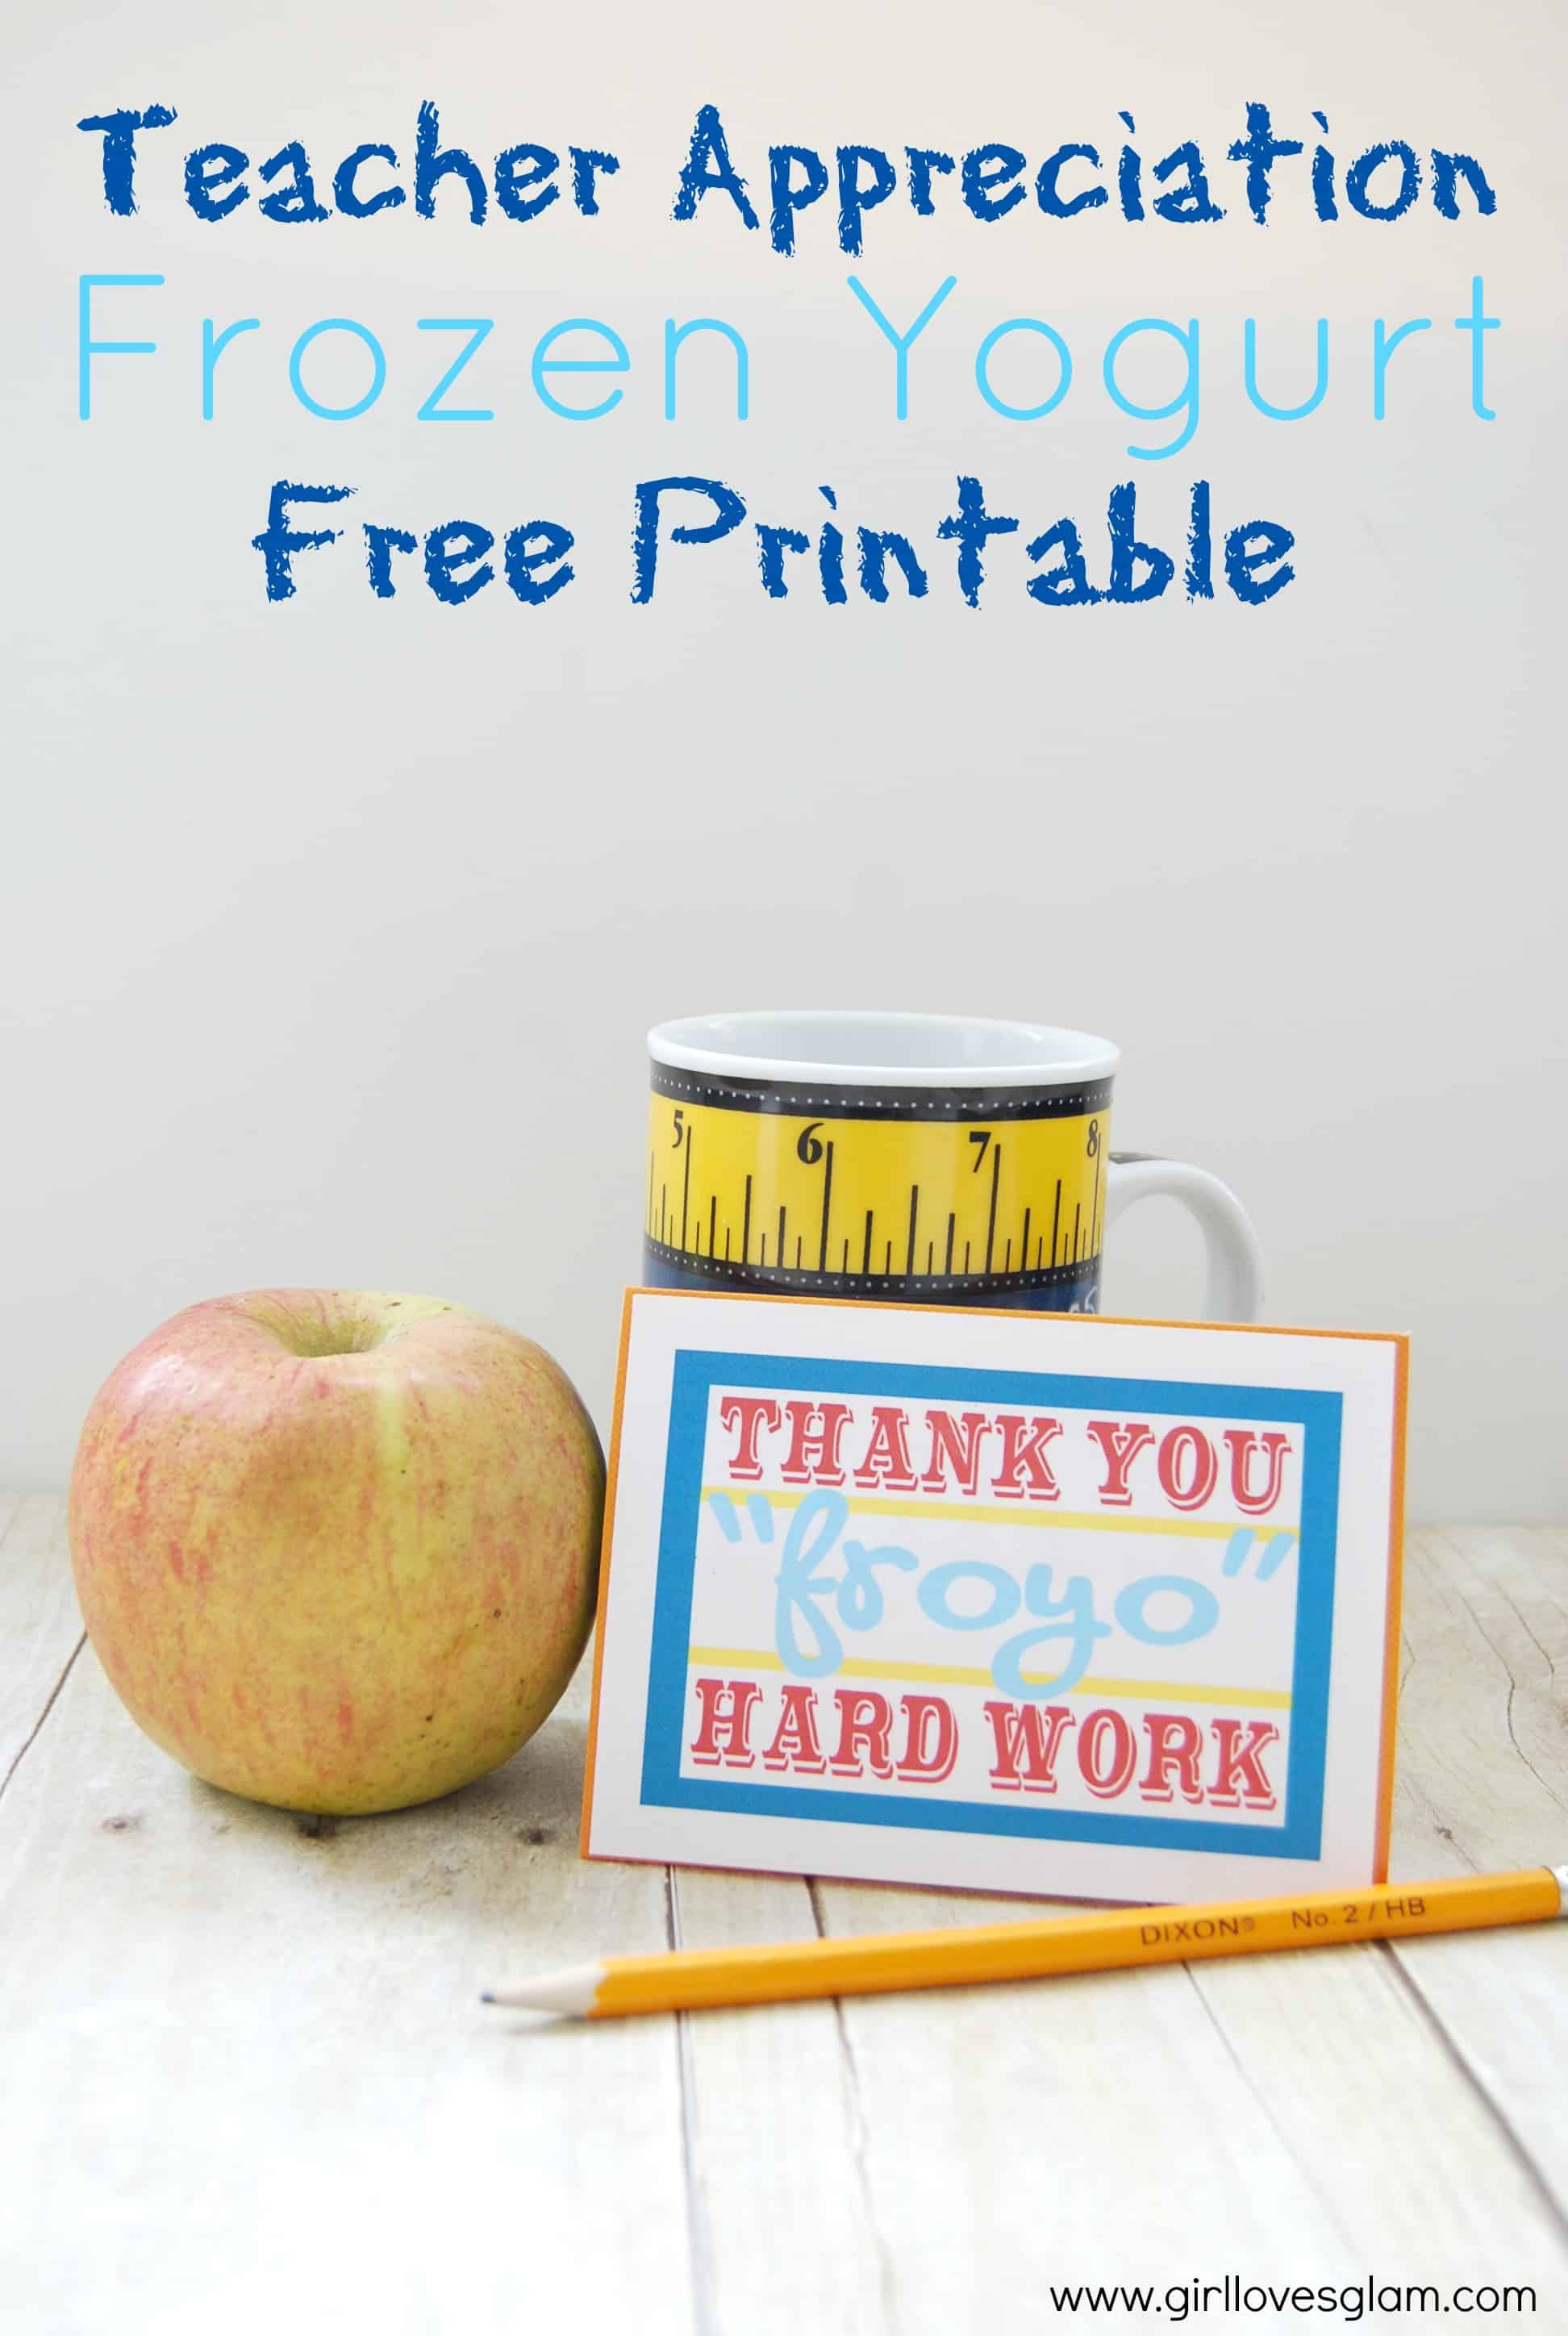 photograph about Thanks for Going the Extra Mile Printable known as Instructor Appreciation Totally free Printable Frozen Yogurt Tag - Female